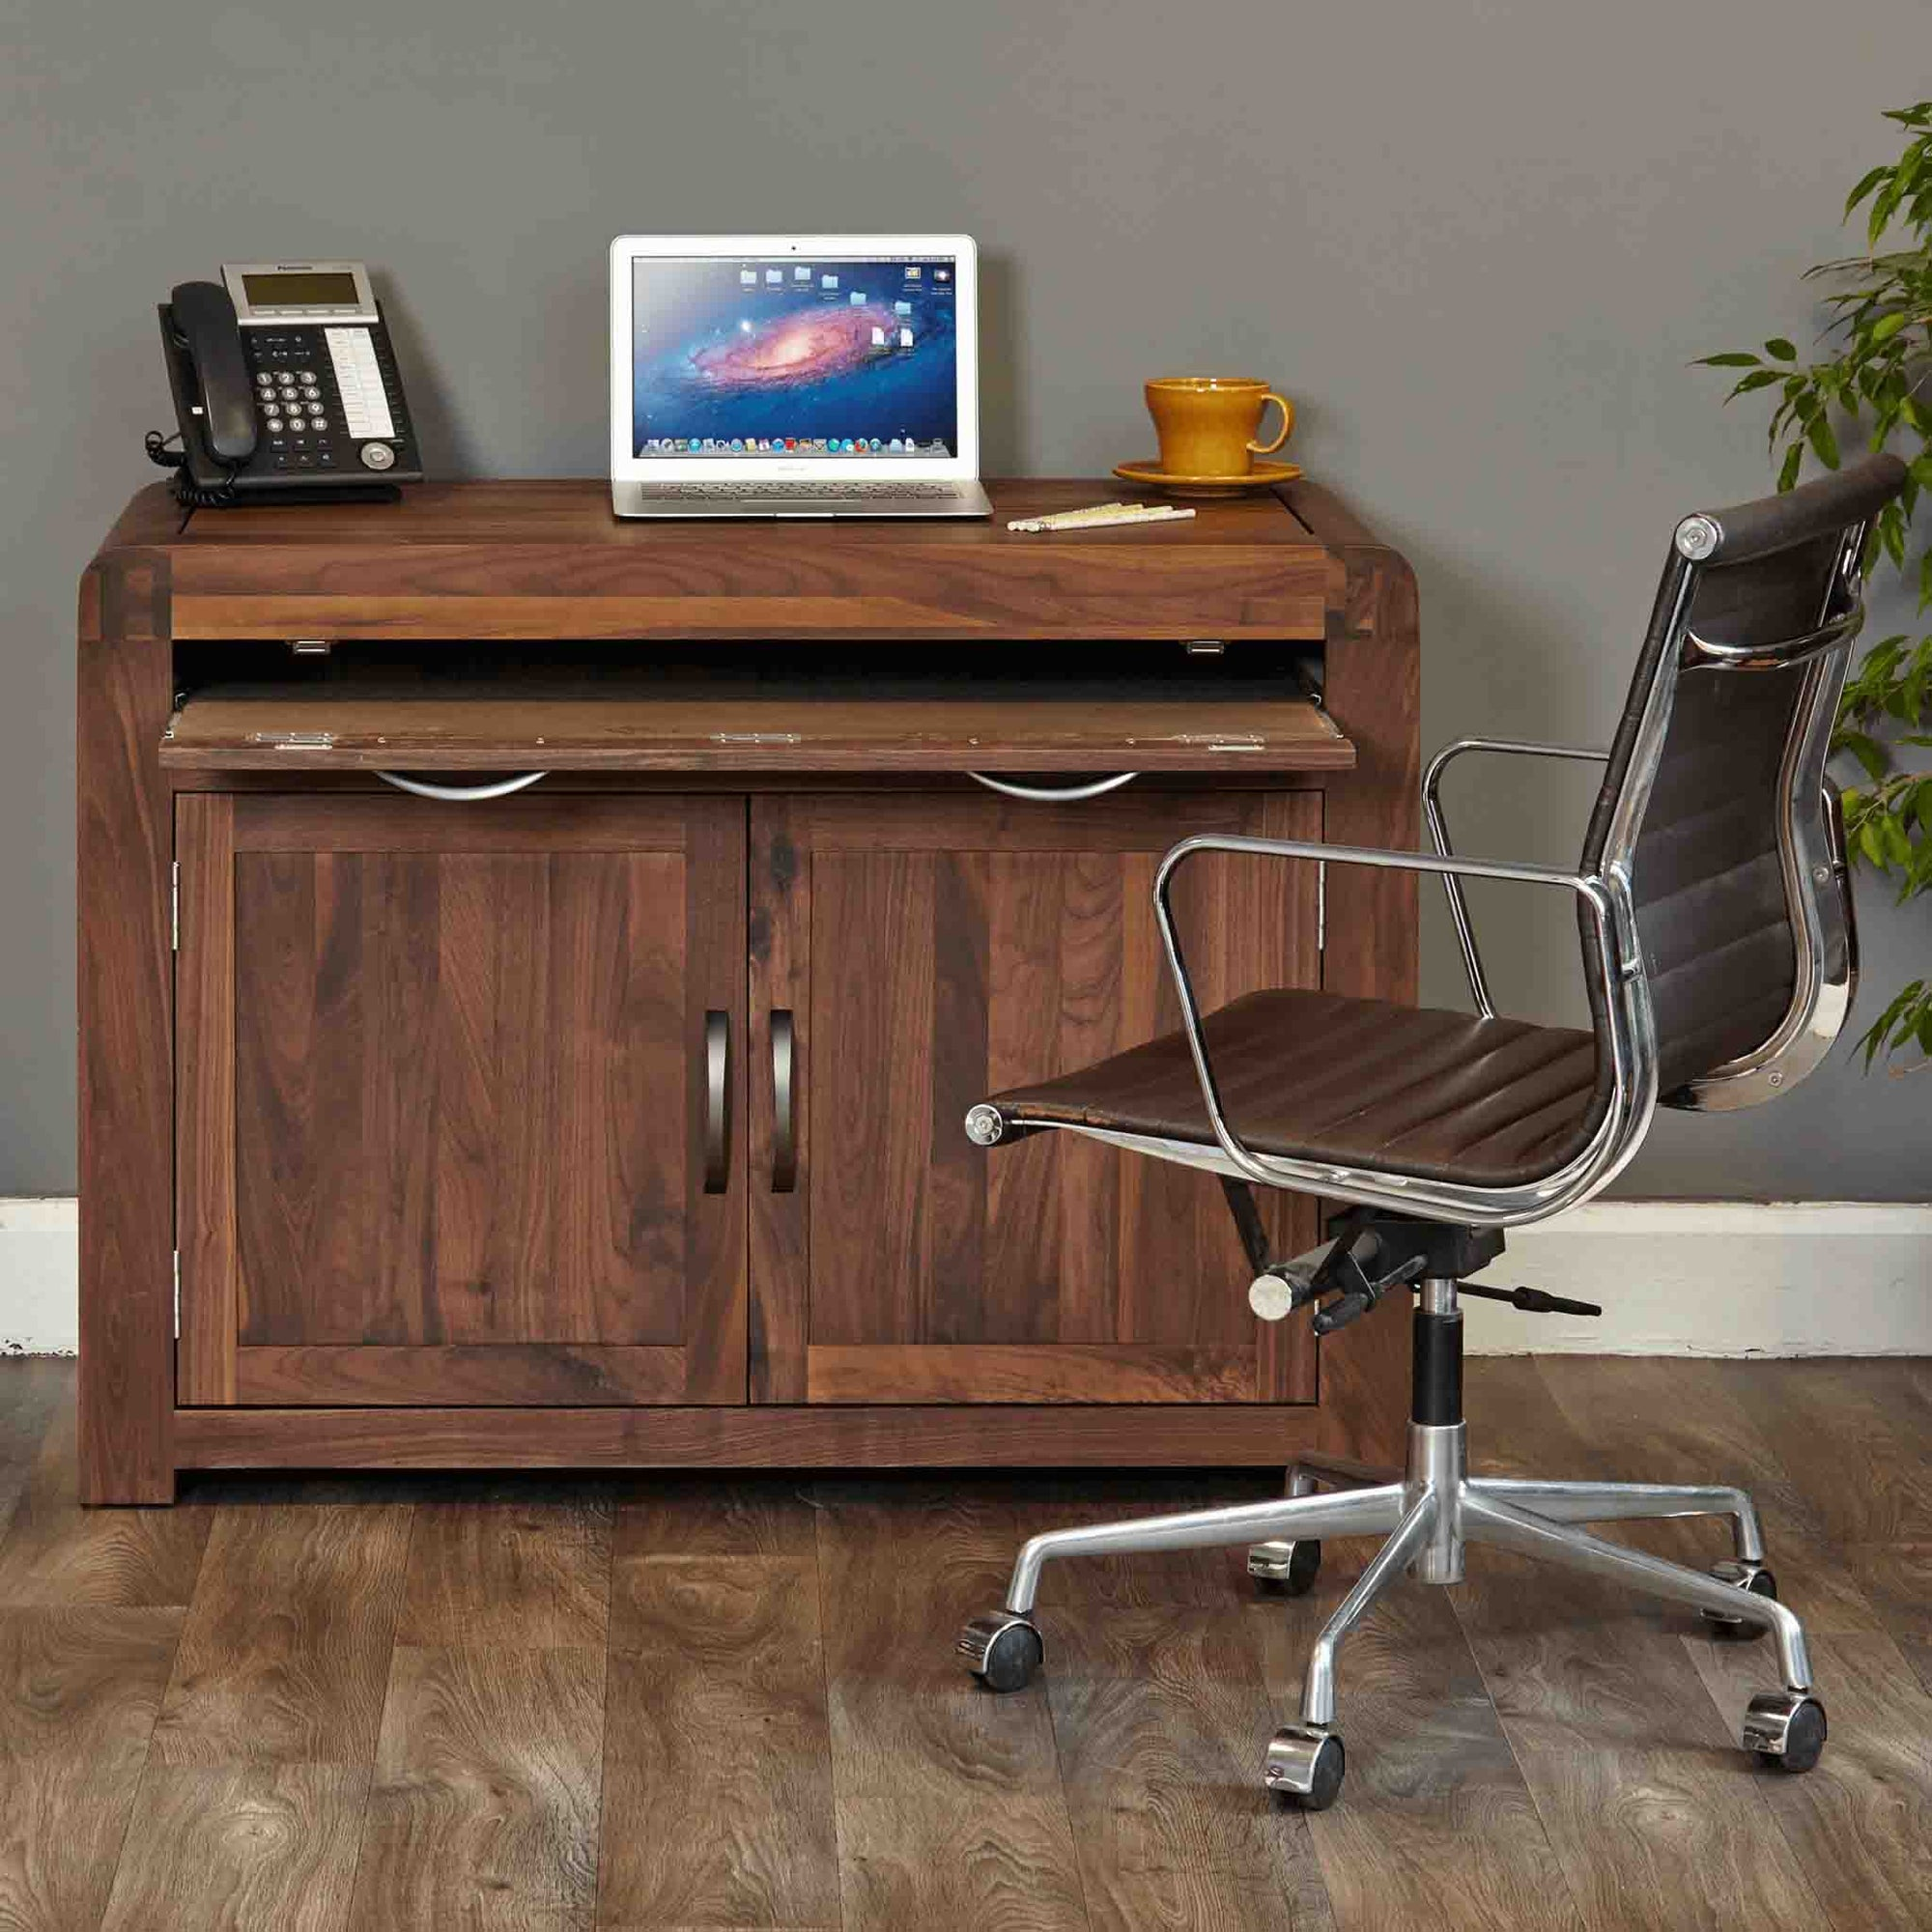 The Salem Wanut Wooden Computer Desk Cabinet from Roseland Furniture